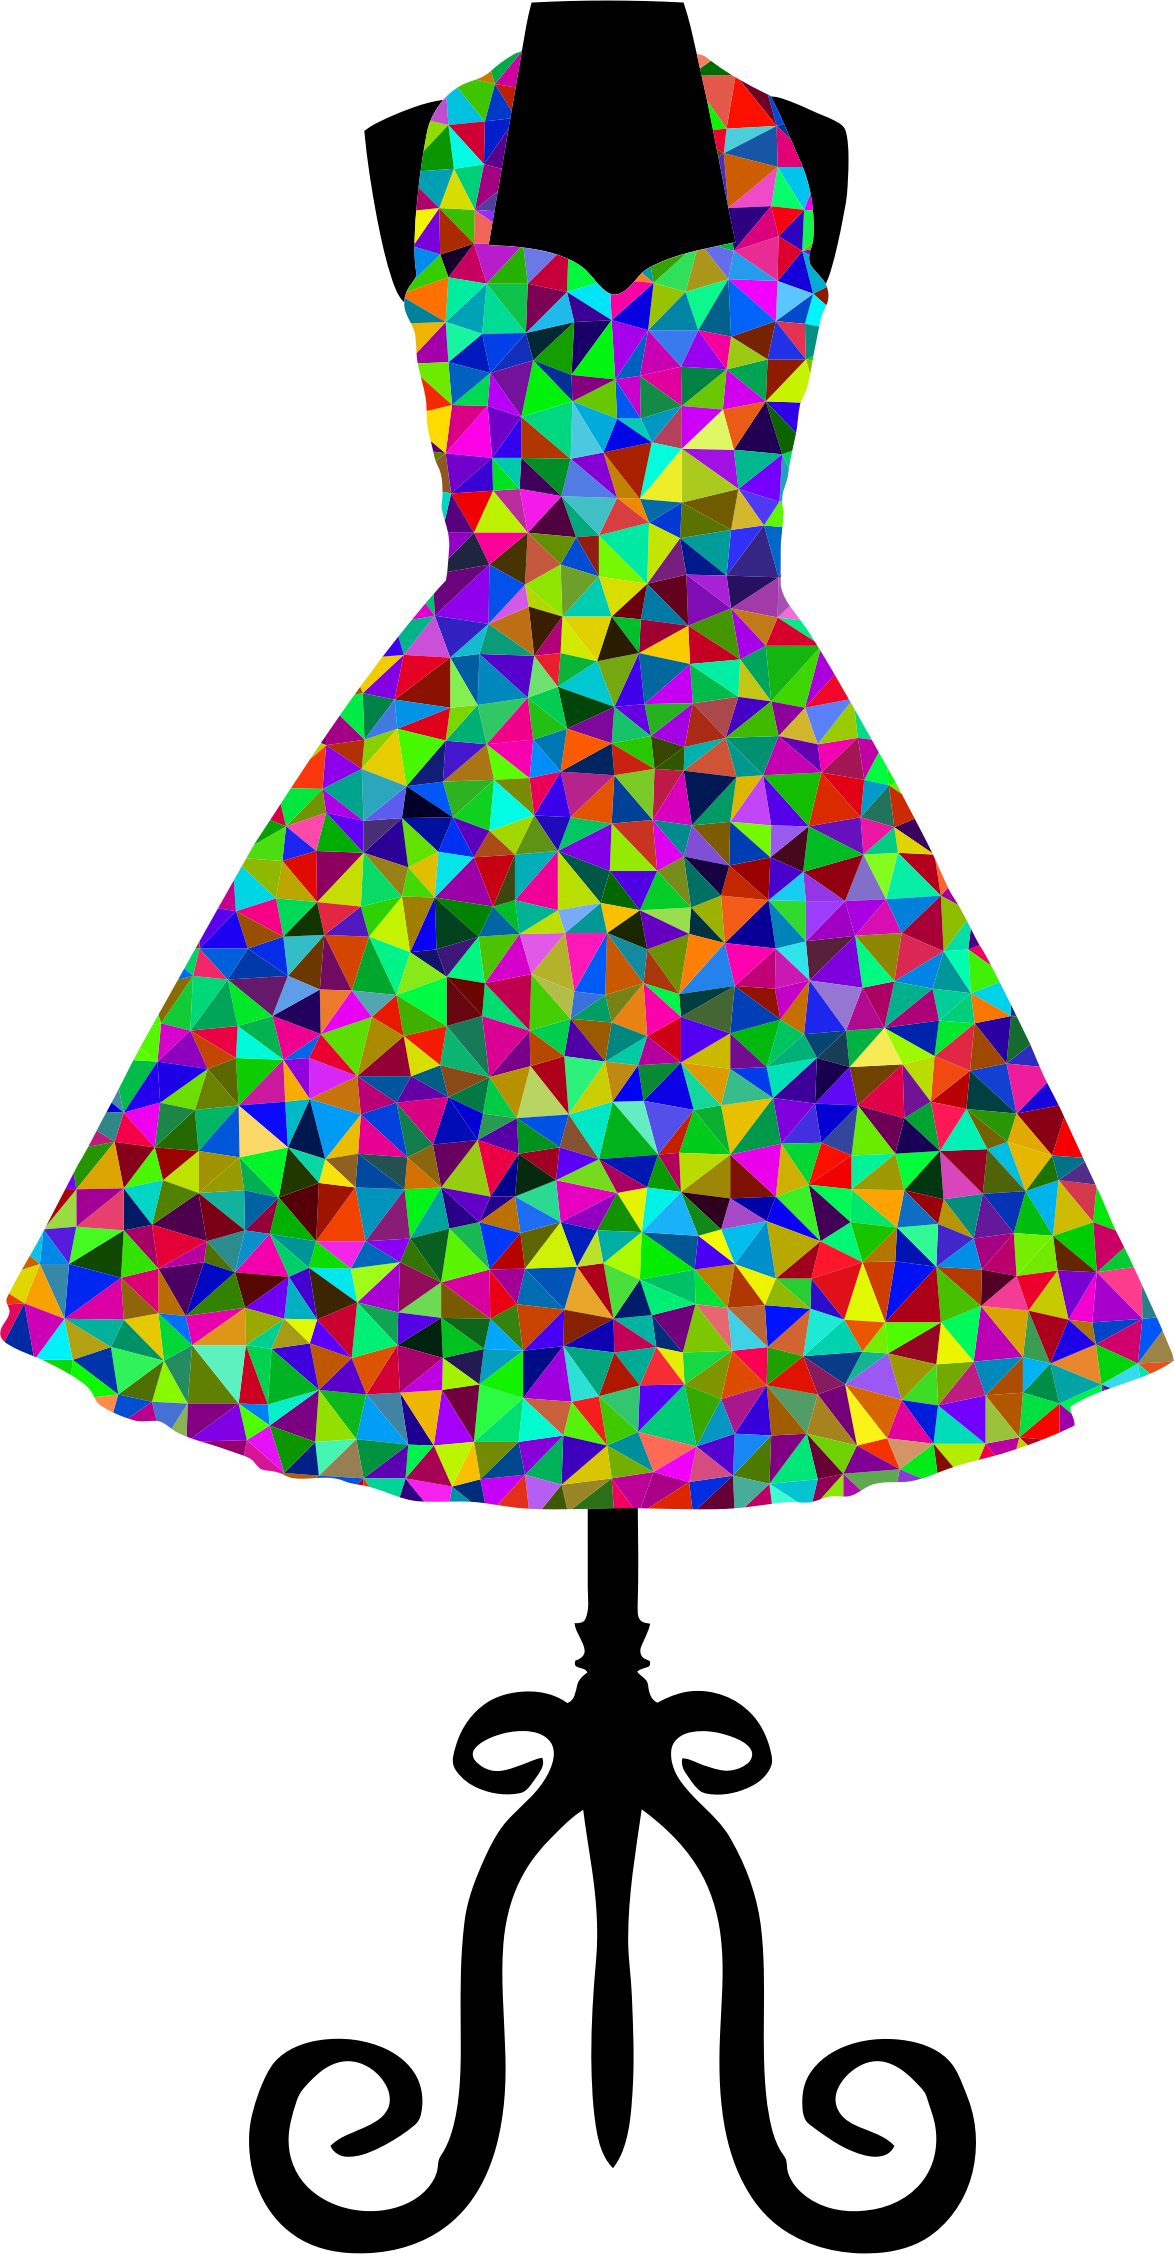 Dress clipart party dress. Hanger clip arts for